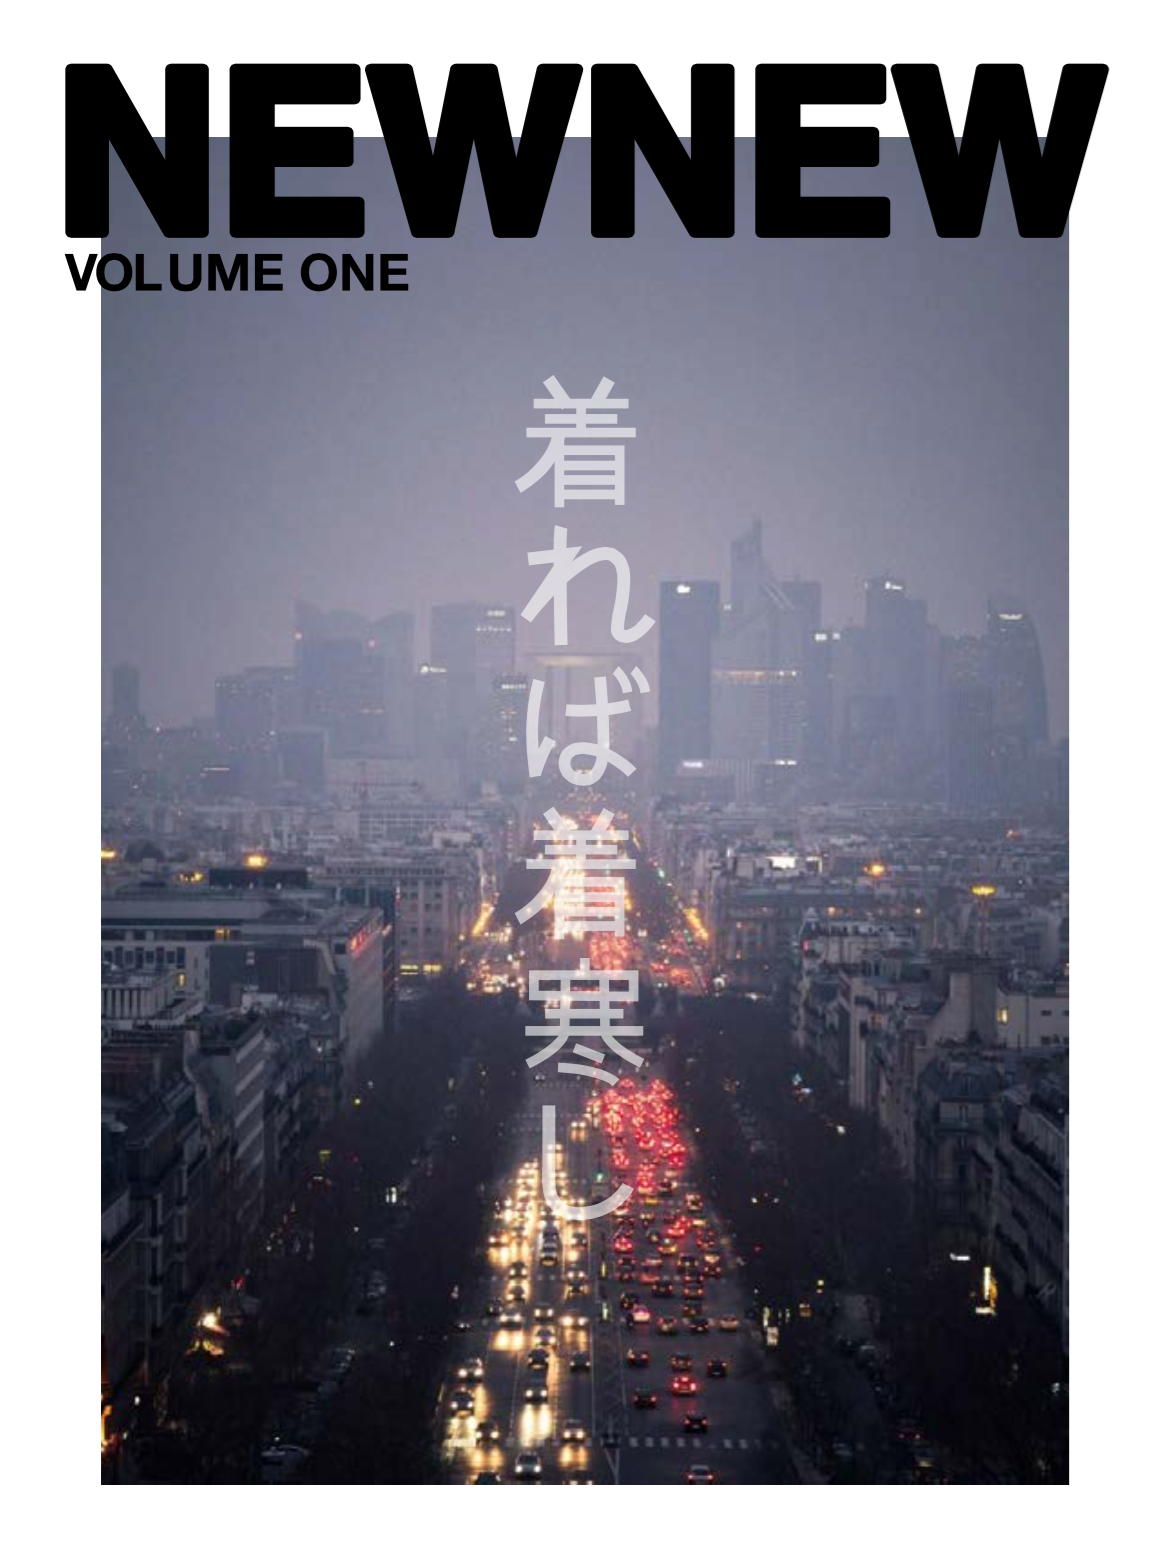 newnew_cover.png